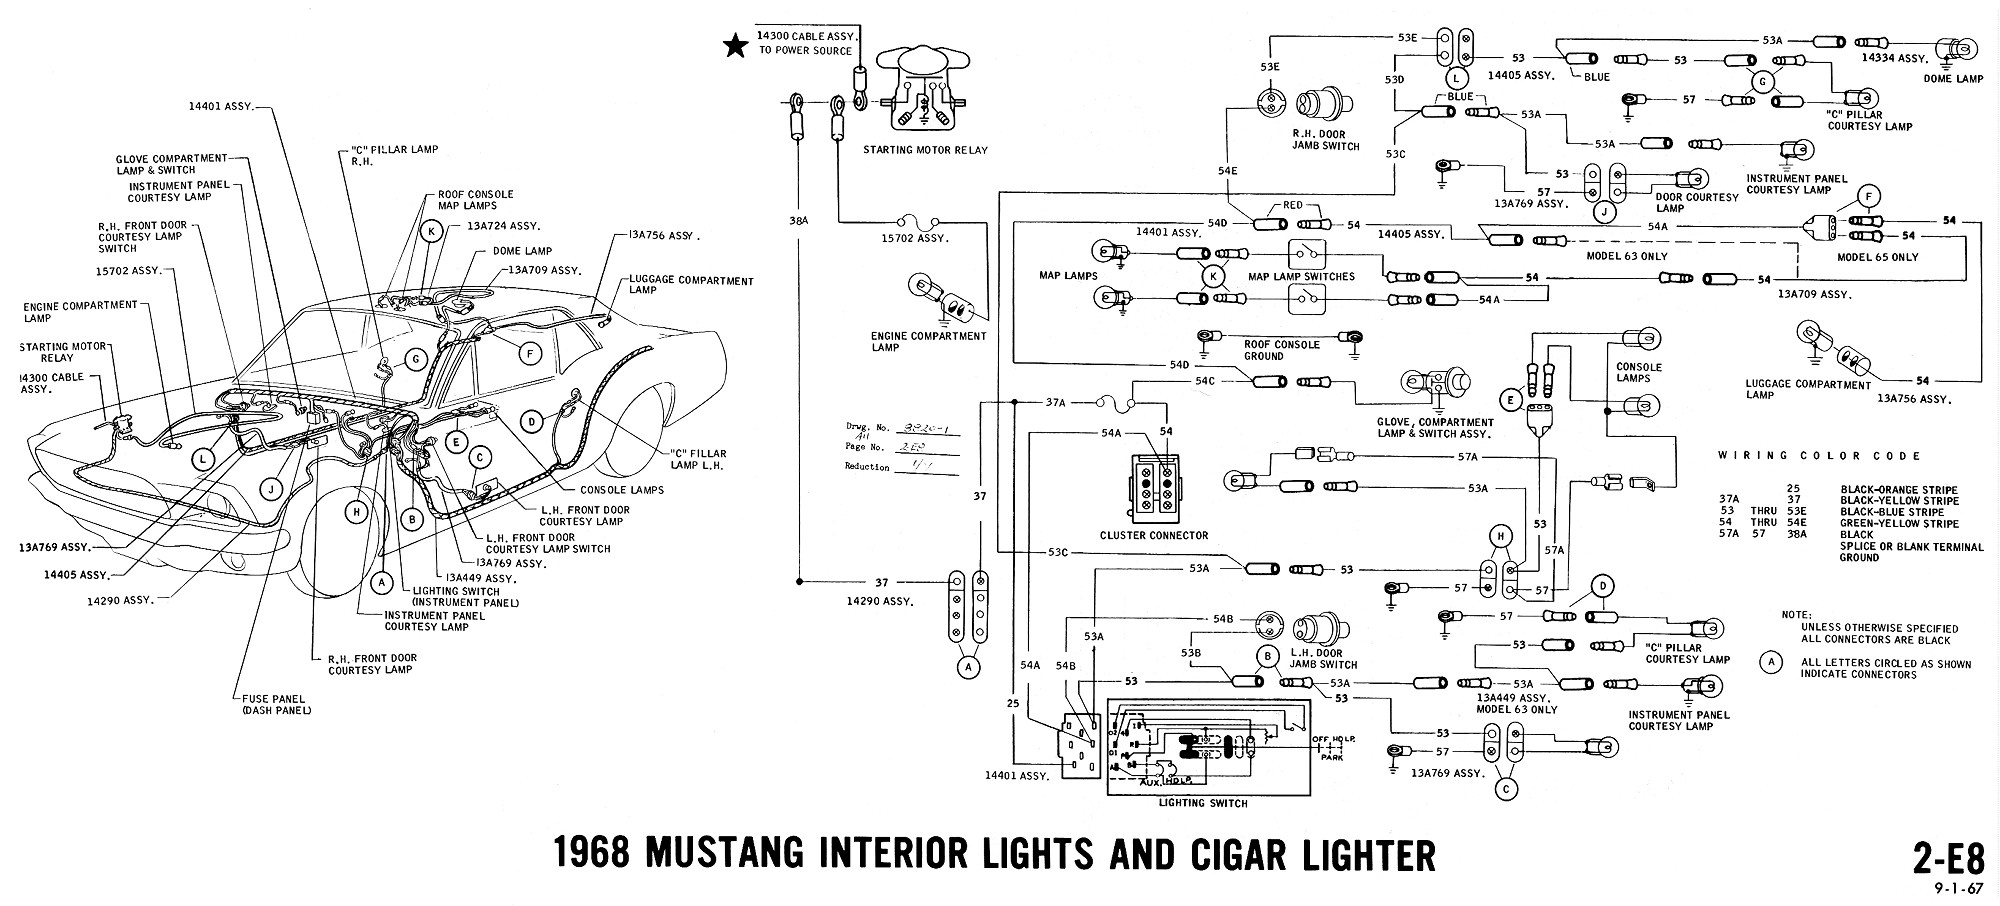 1968 mustang wiring diagram interior lights cigar lighter 1968 mustang wiring diagram 1966 mustang wiring diagrams \u2022 free 66 mustang ignition wiring diagram at crackthecode.co